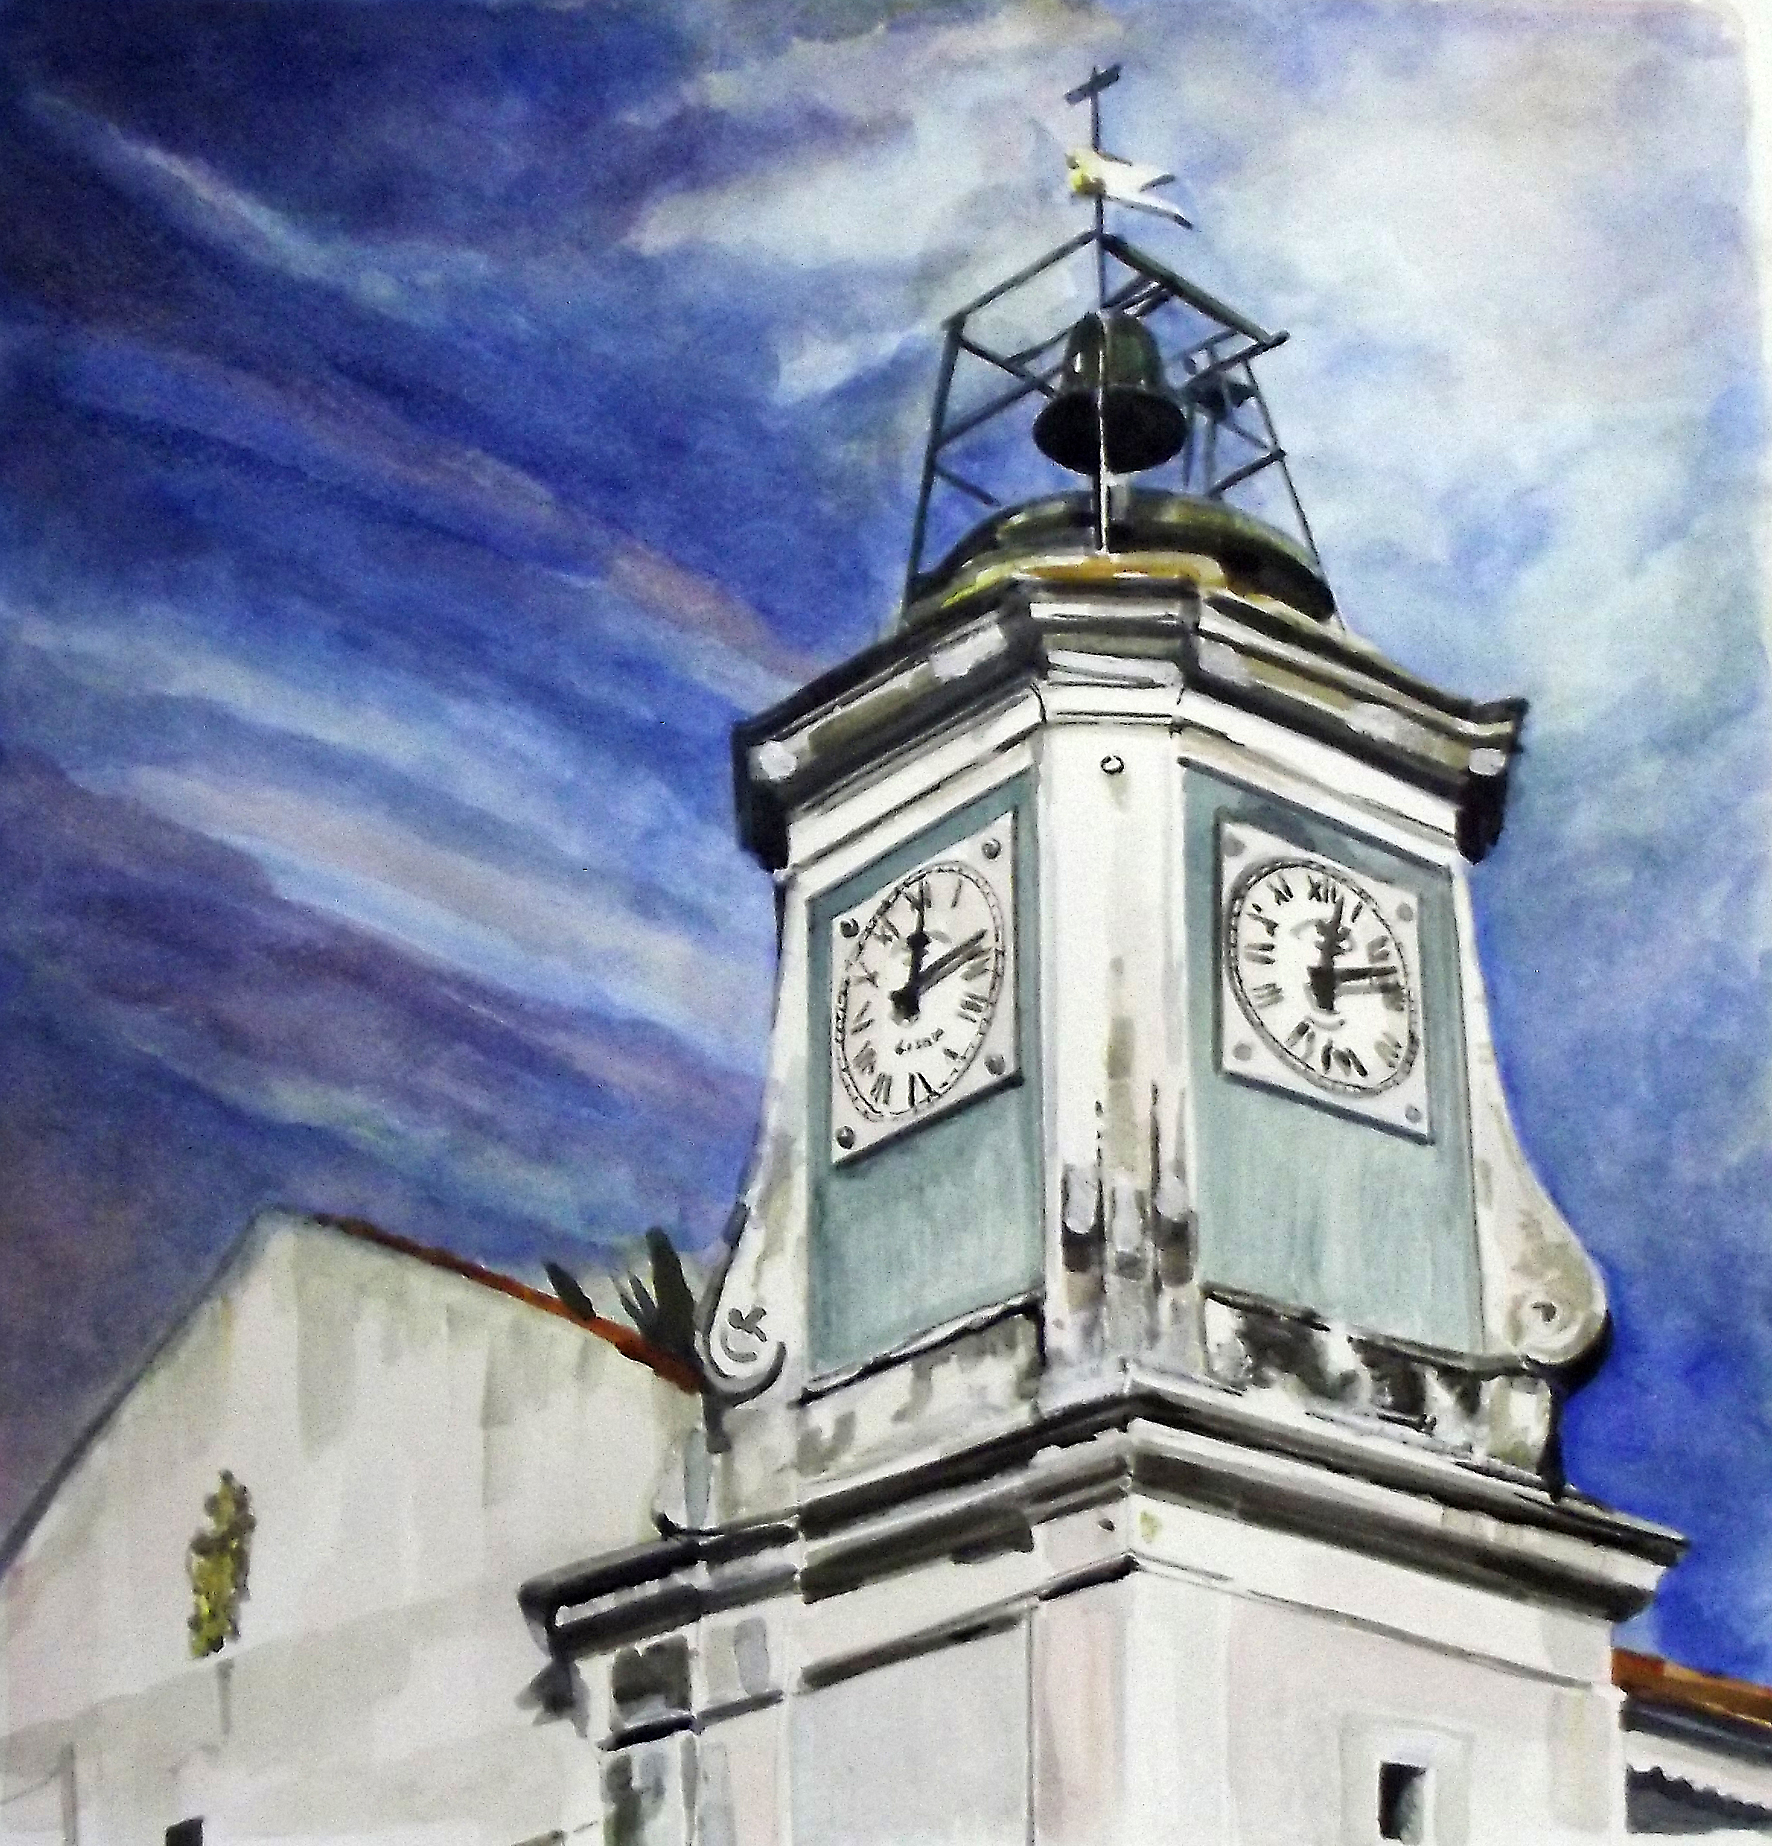 Old School Clock Tower - Almeirim